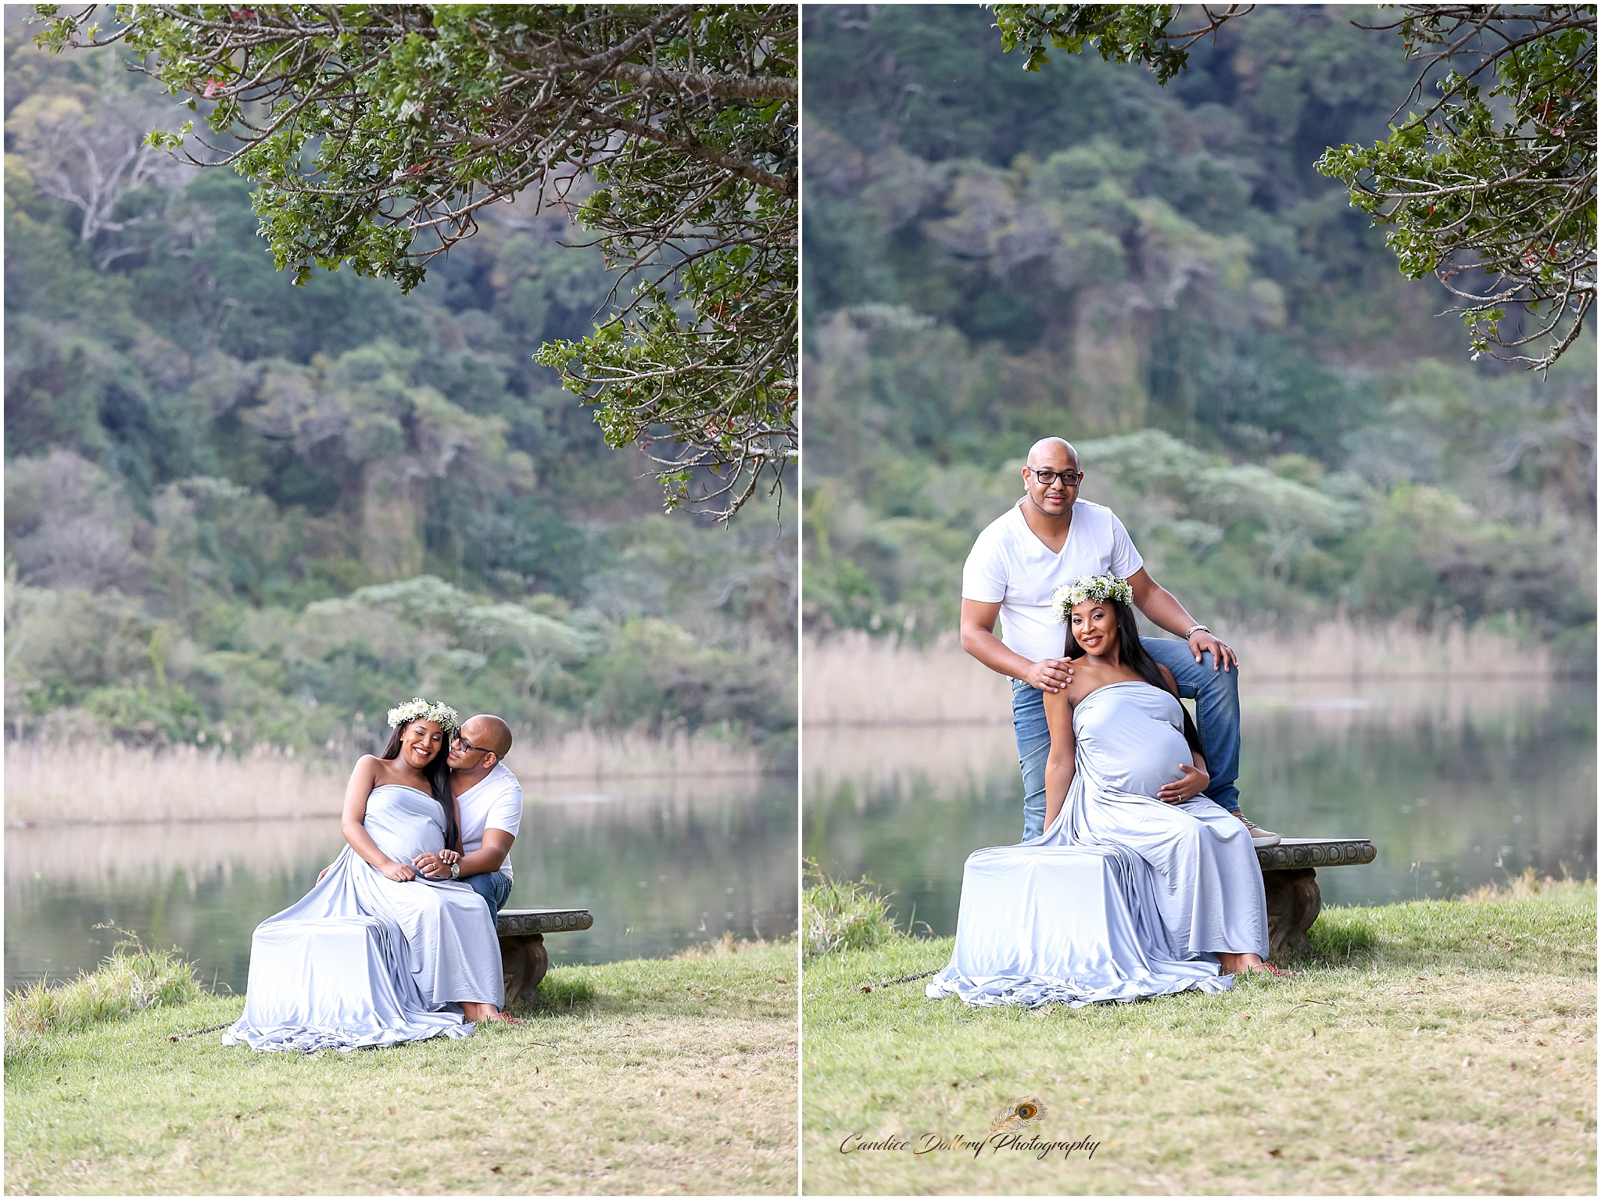 Nthabie & Lawrence - Candice Dollery_1758